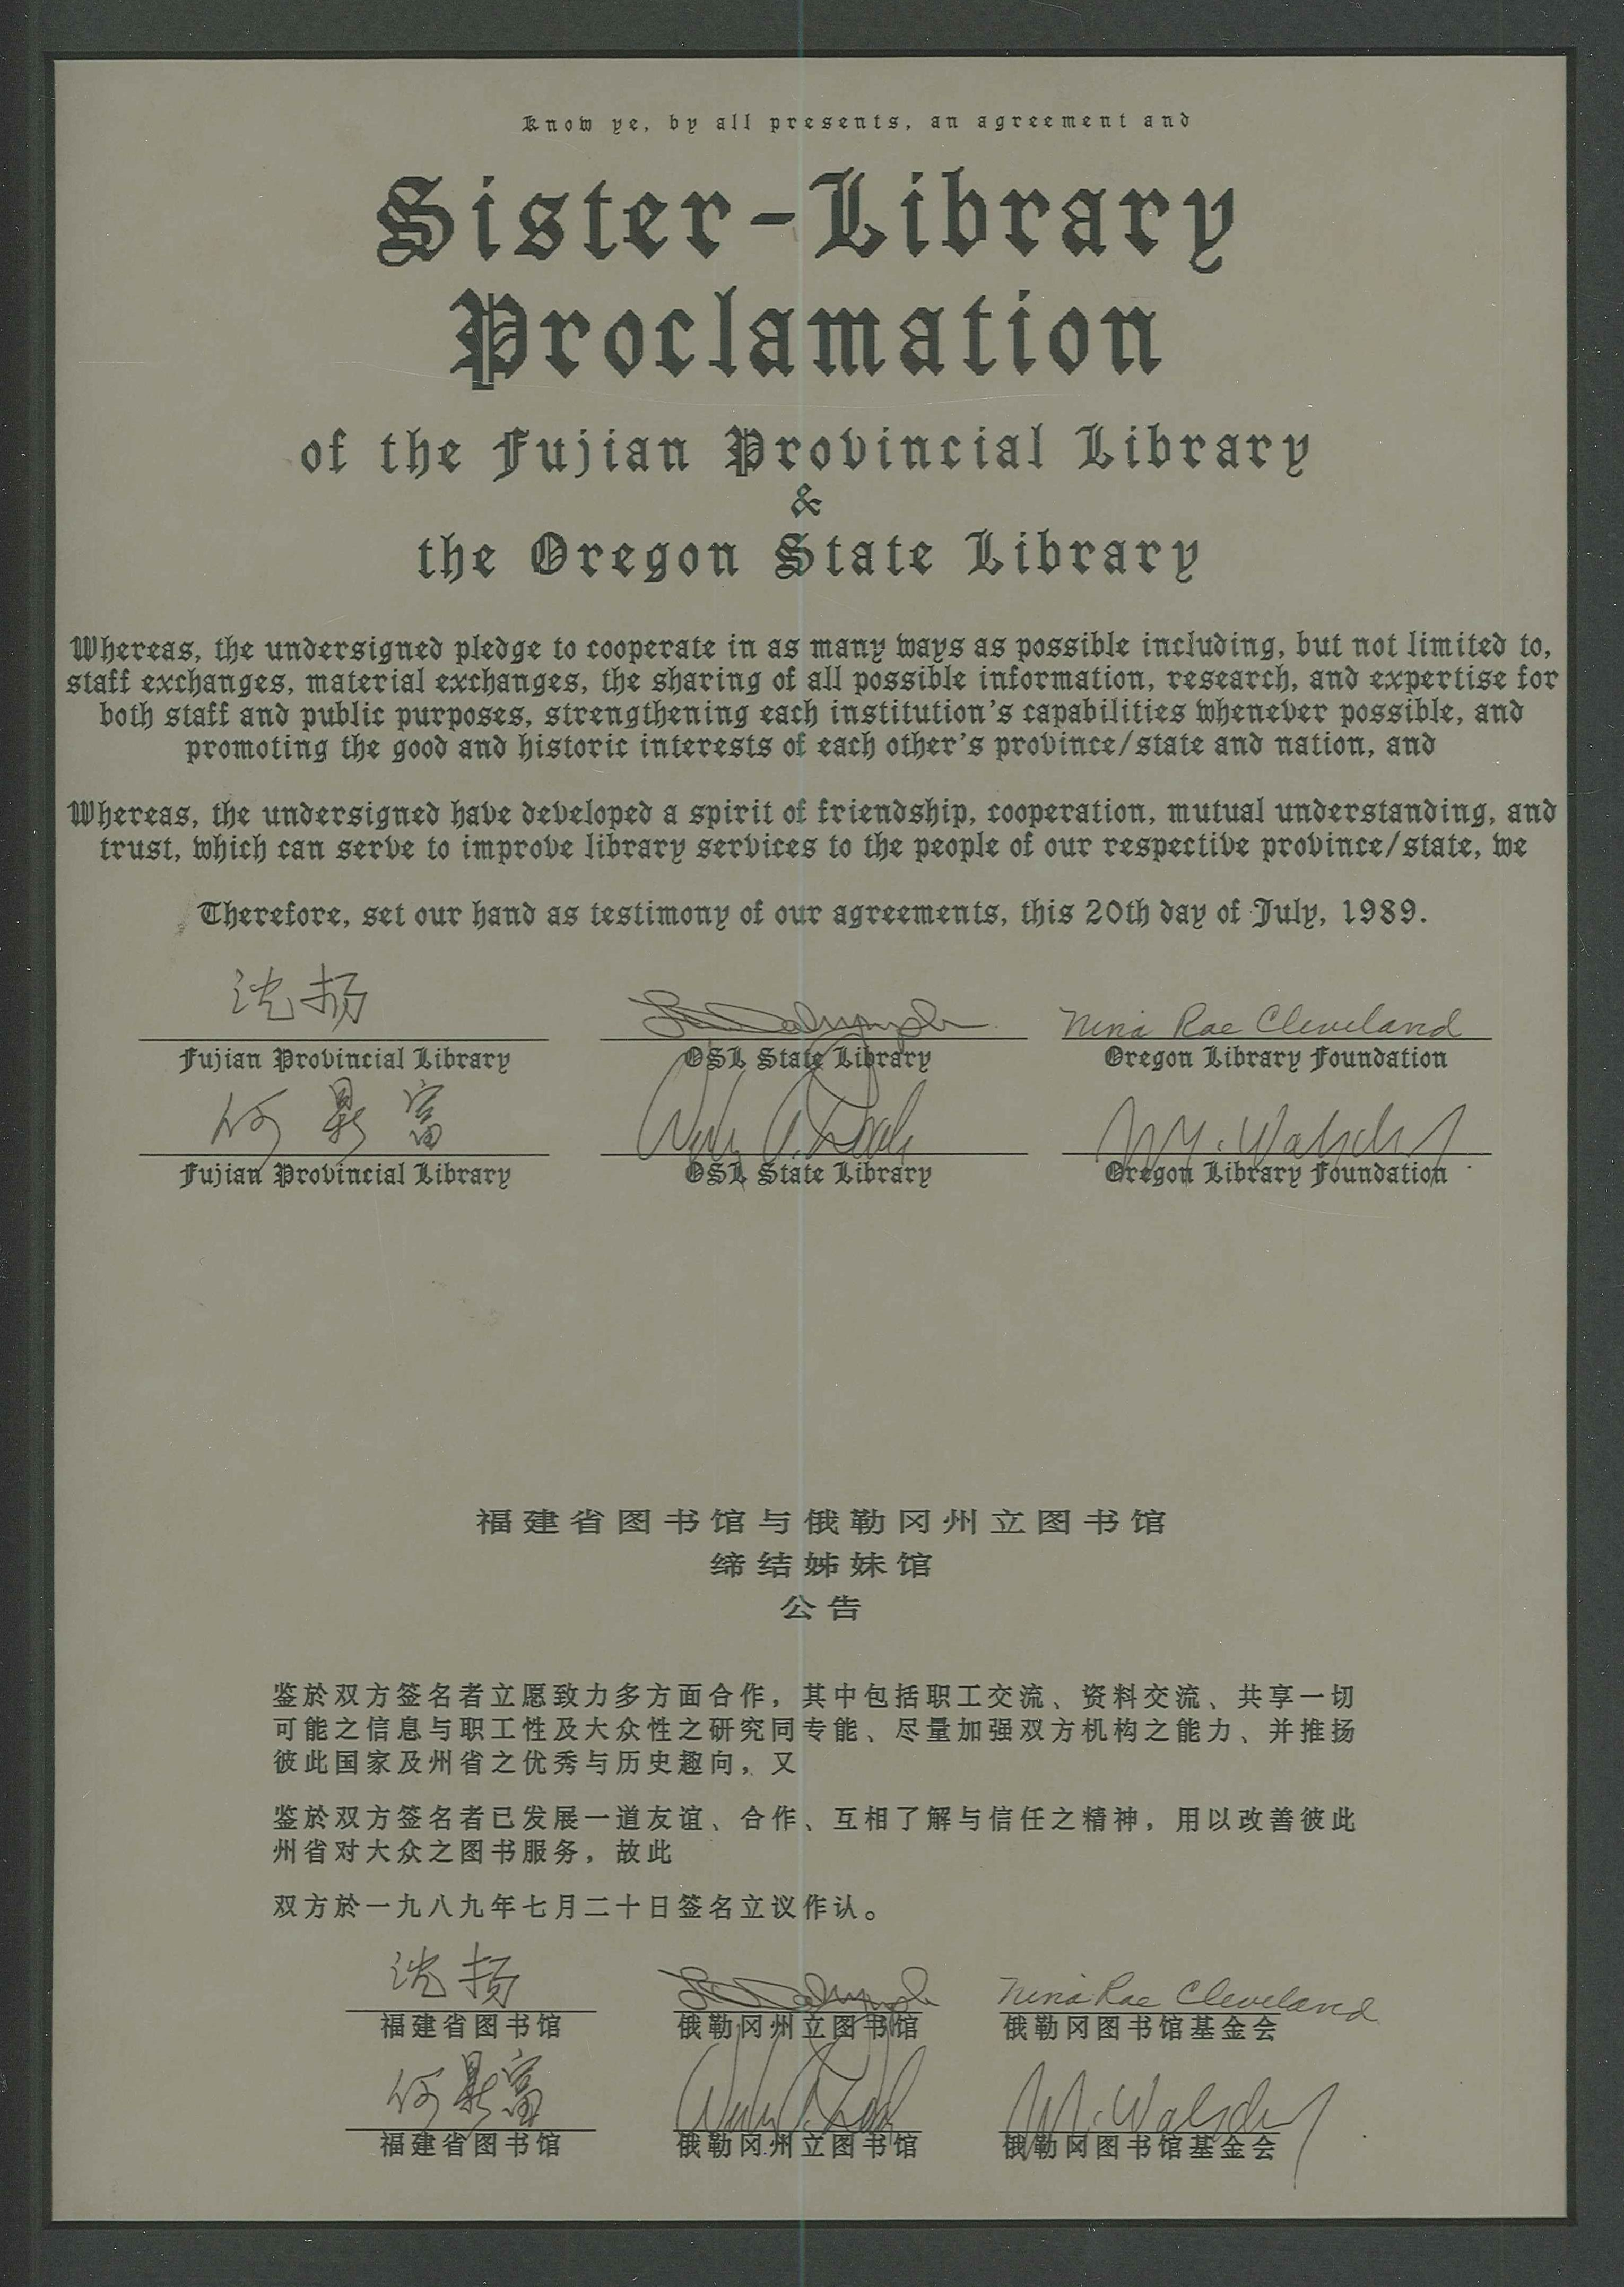 Sister-Library Proclamation document